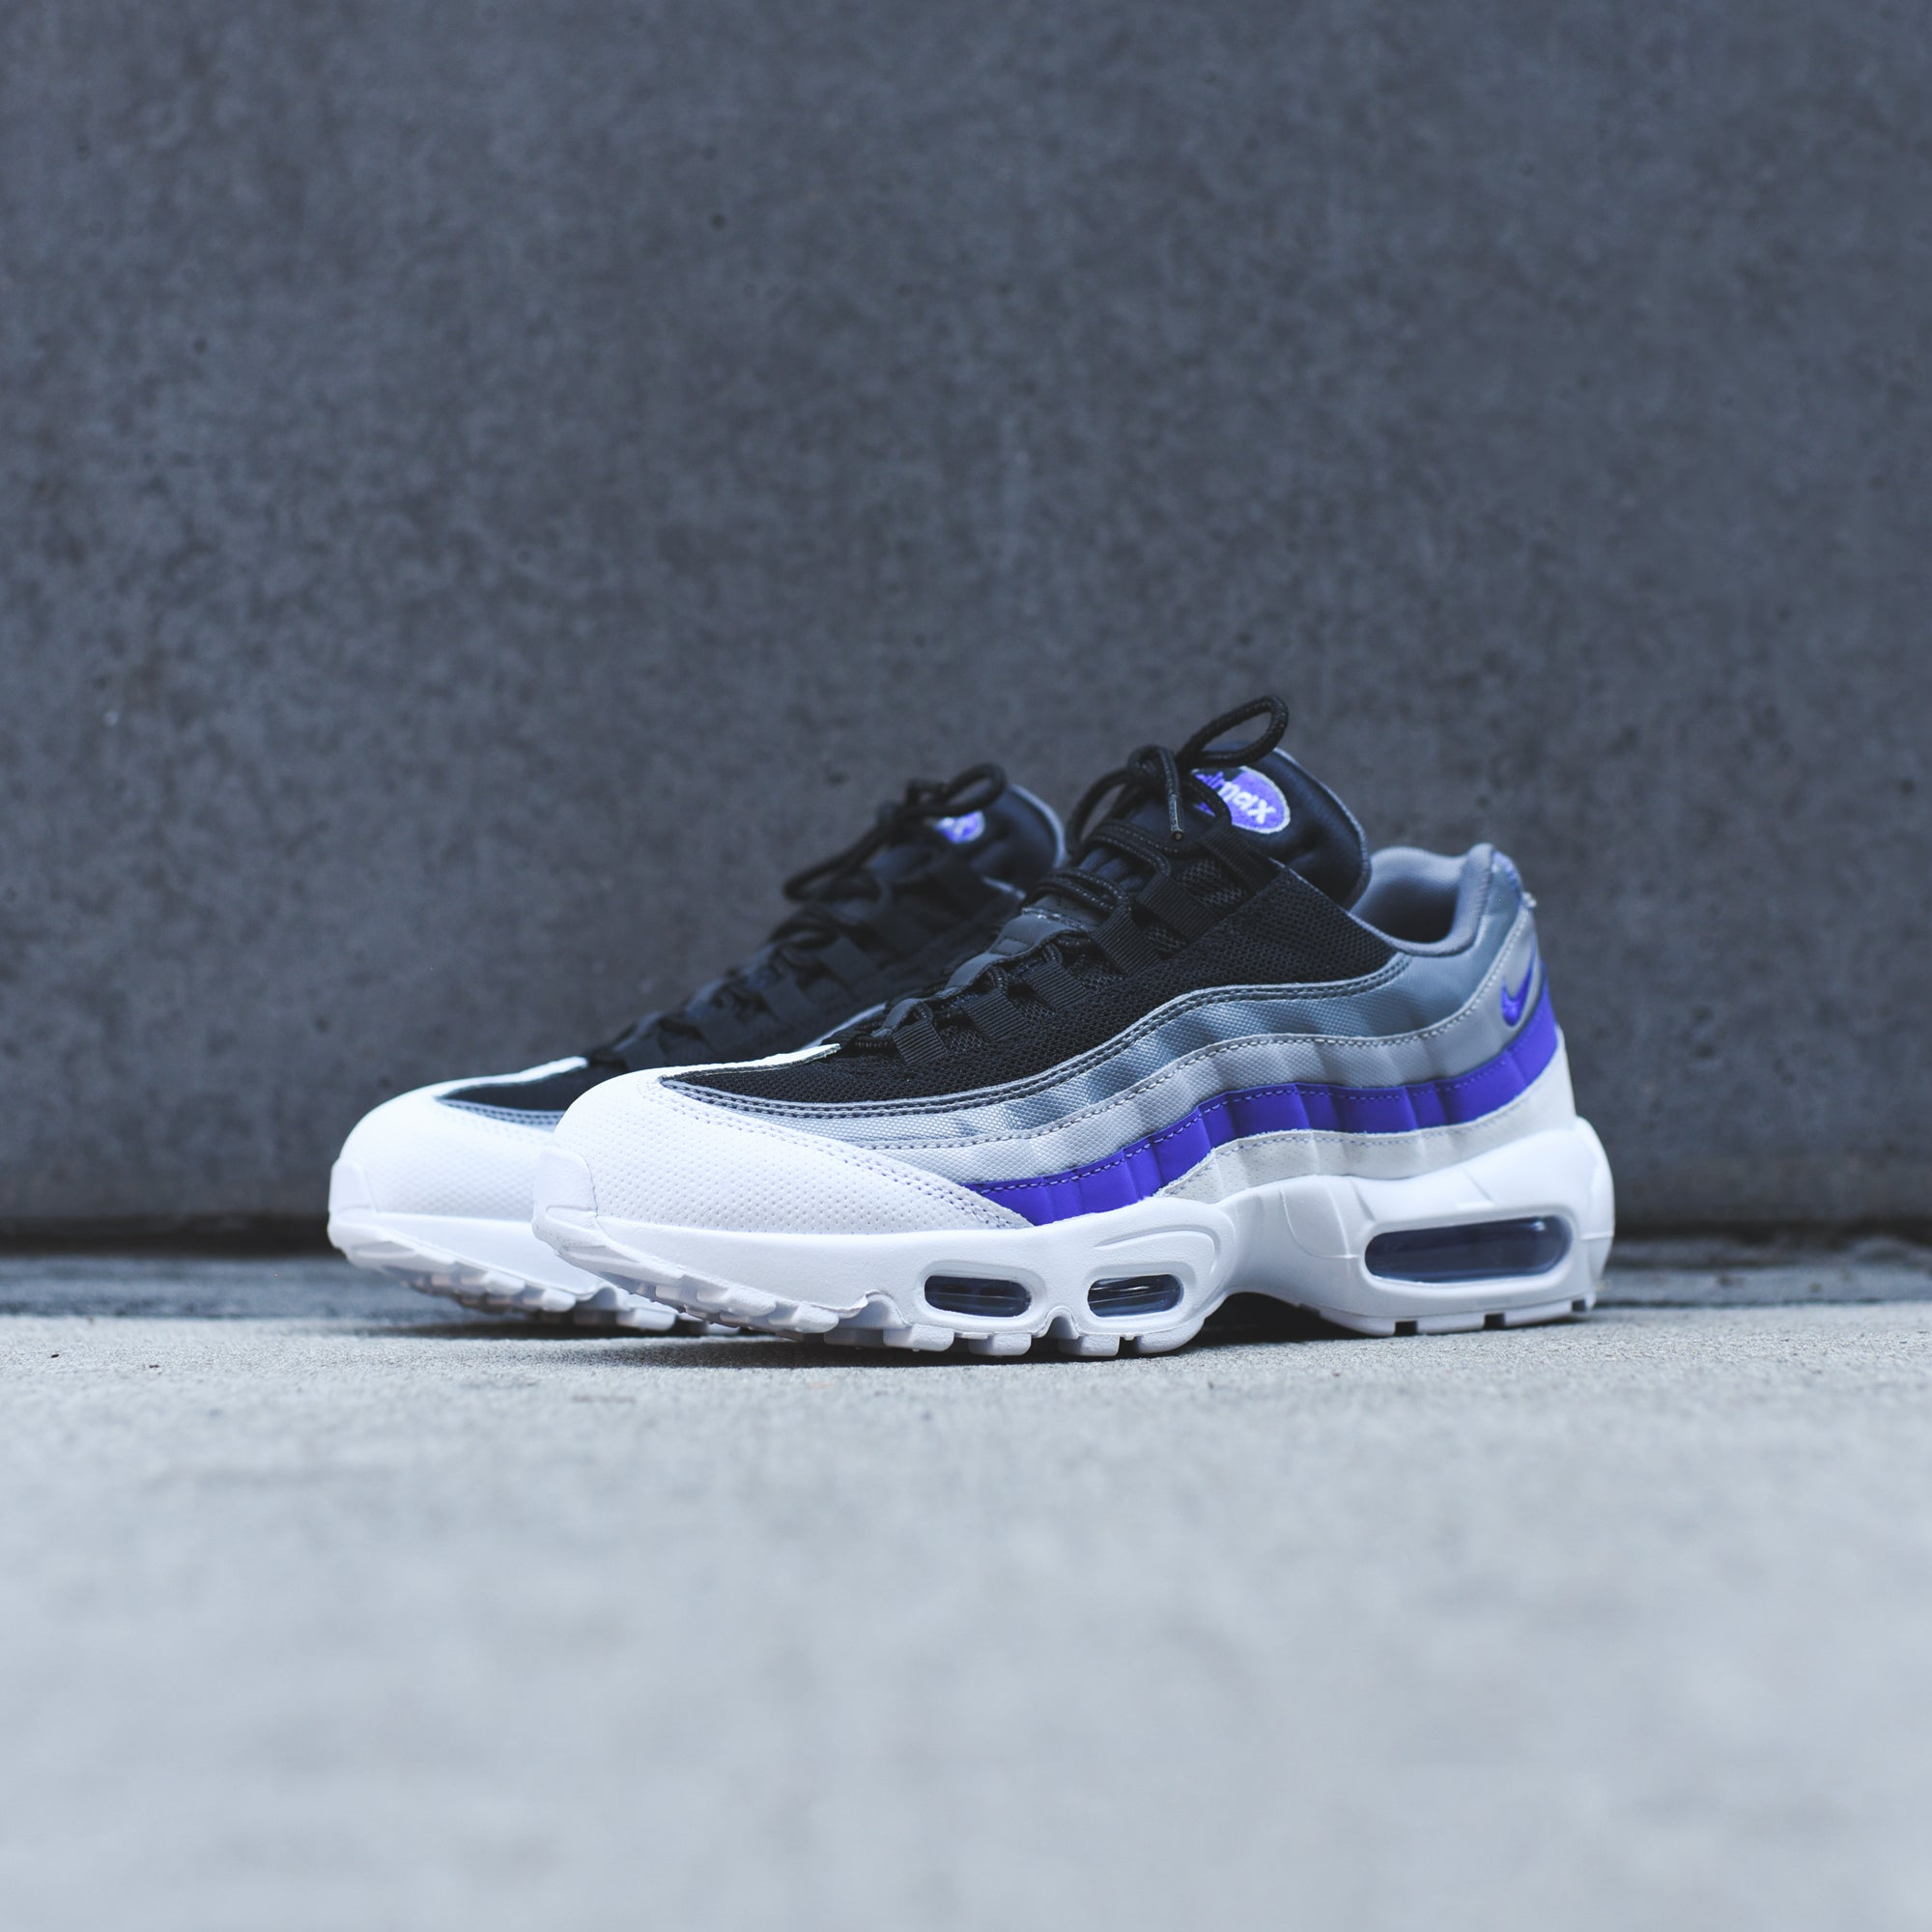 Nike Air Max 95 Essential White Violet Kith